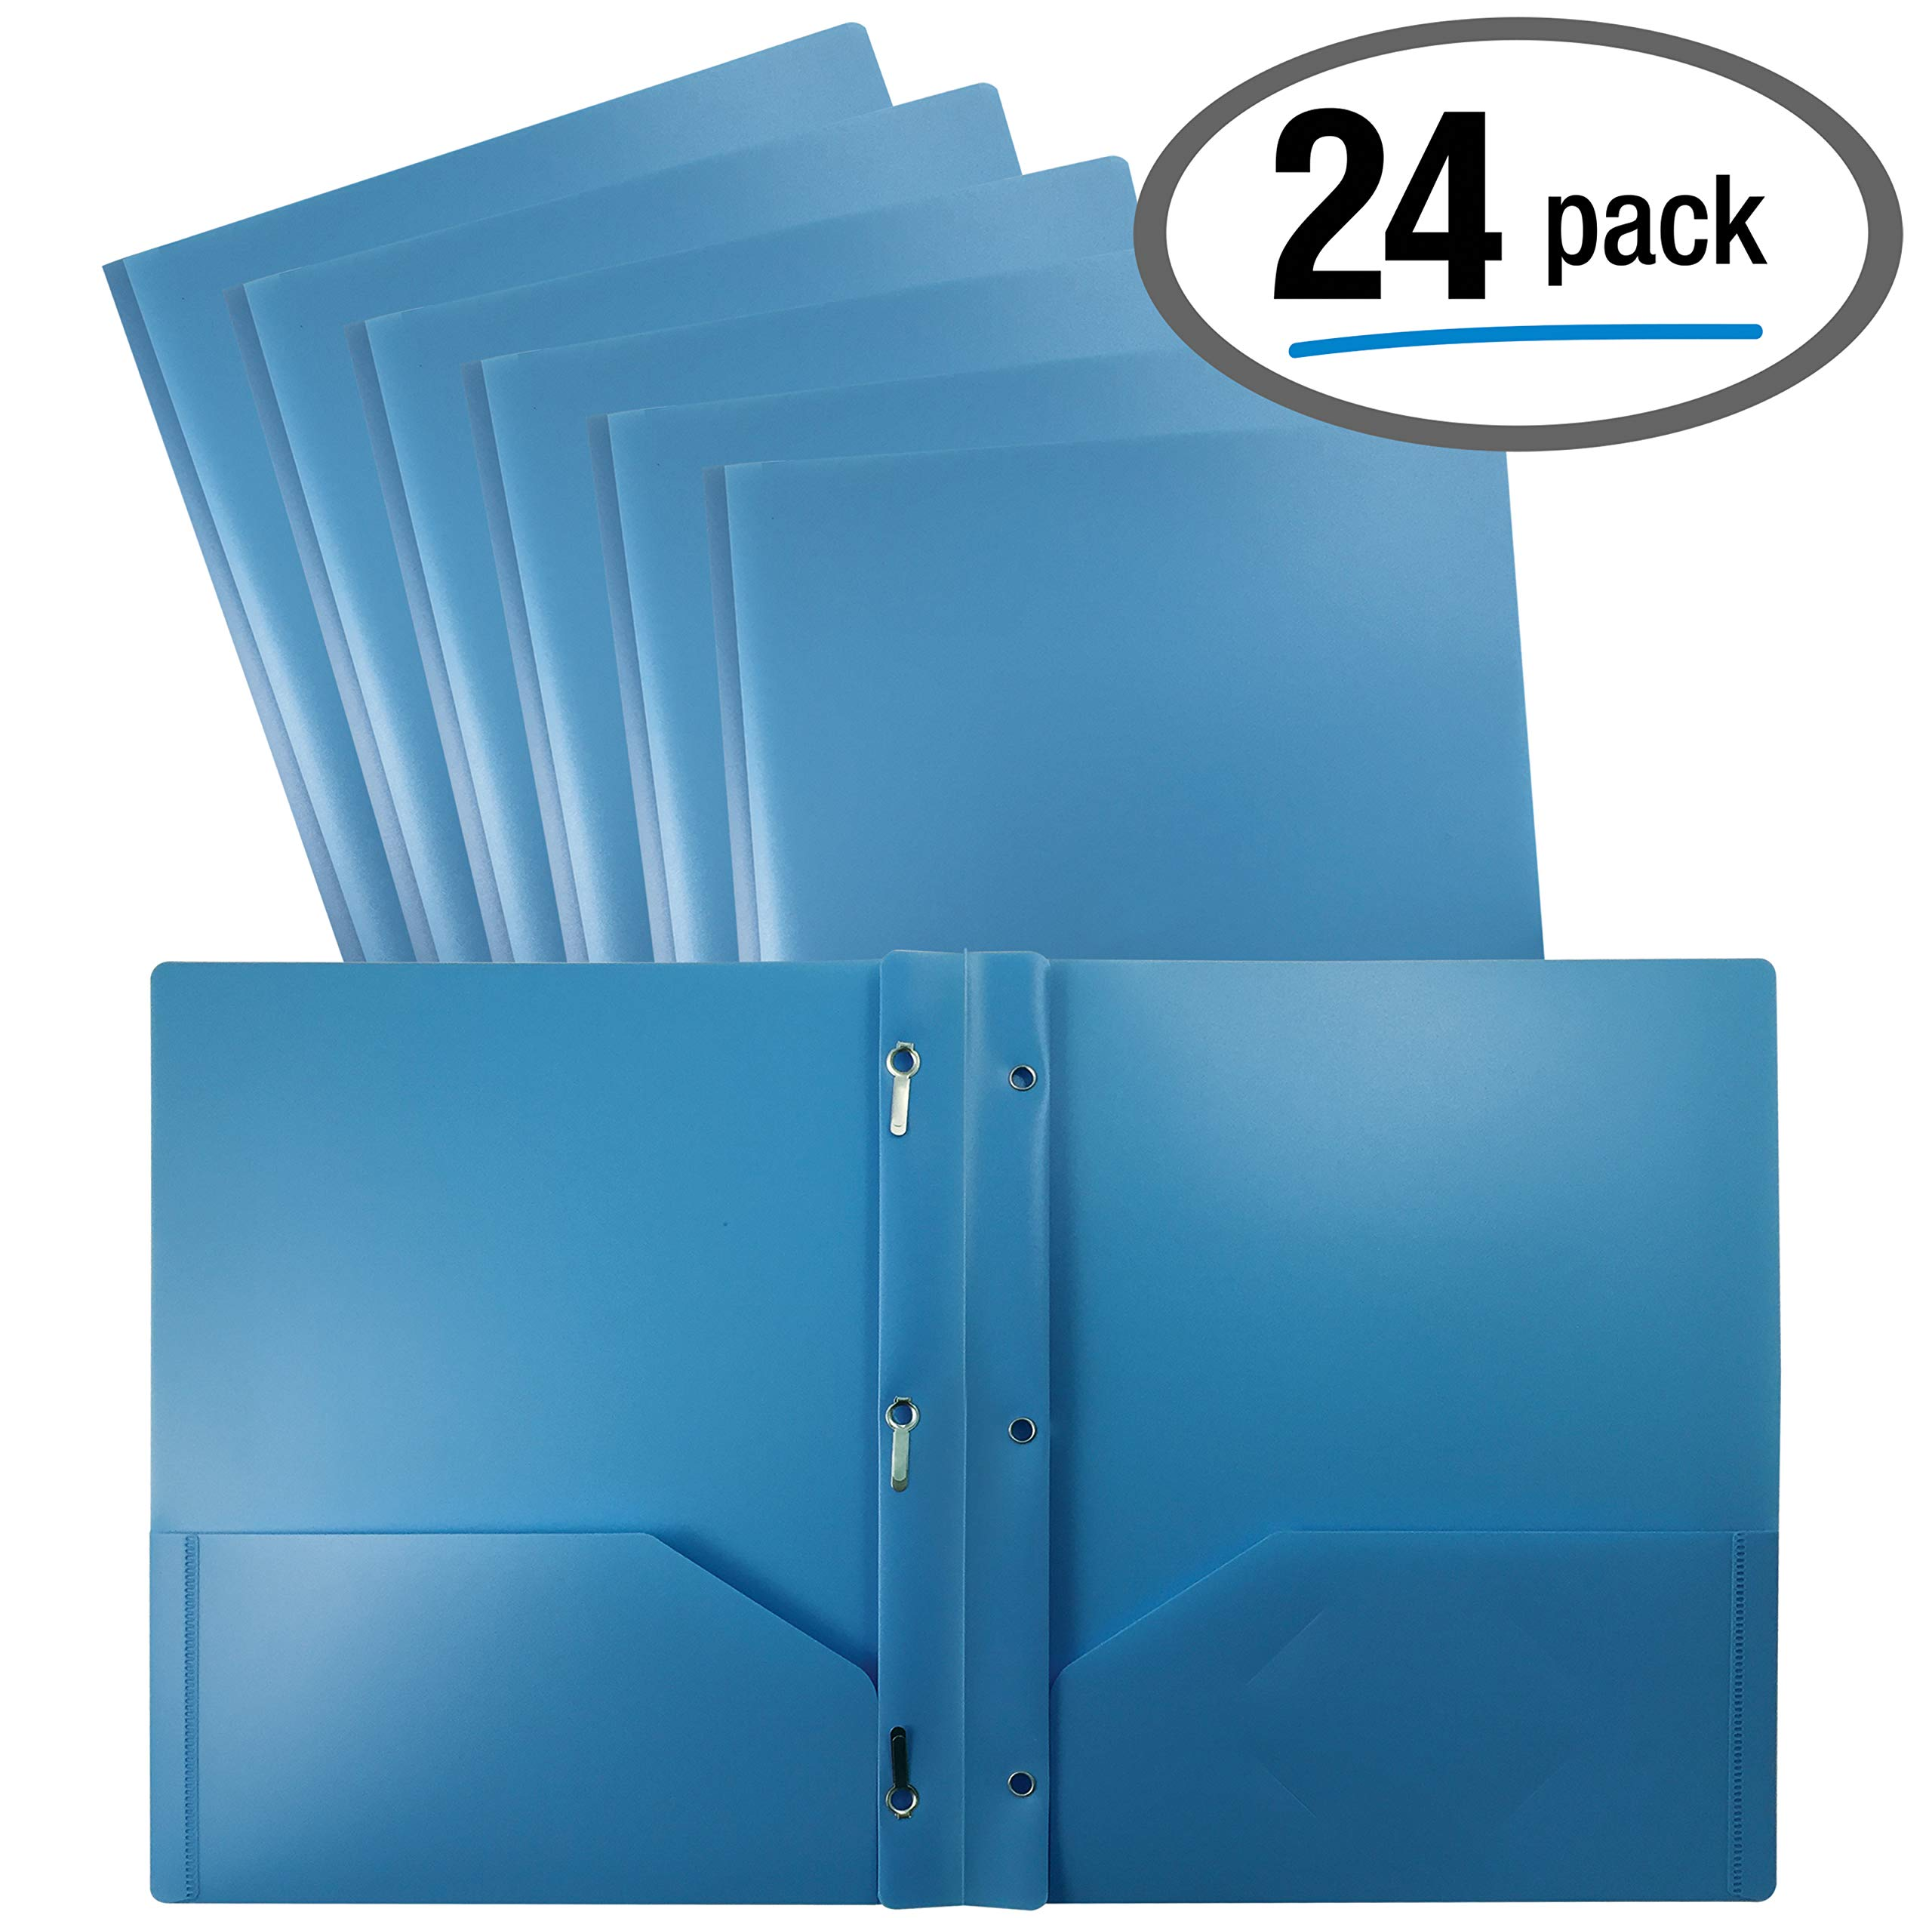 Better Office Products Light Blue Plastic 2 Pocket Folders with Prongs, 24 Pack, Heavyweight, Letter Size Poly Folders with 3 Metal Prongs Fastener Clips, Light Blue by Better Office Products